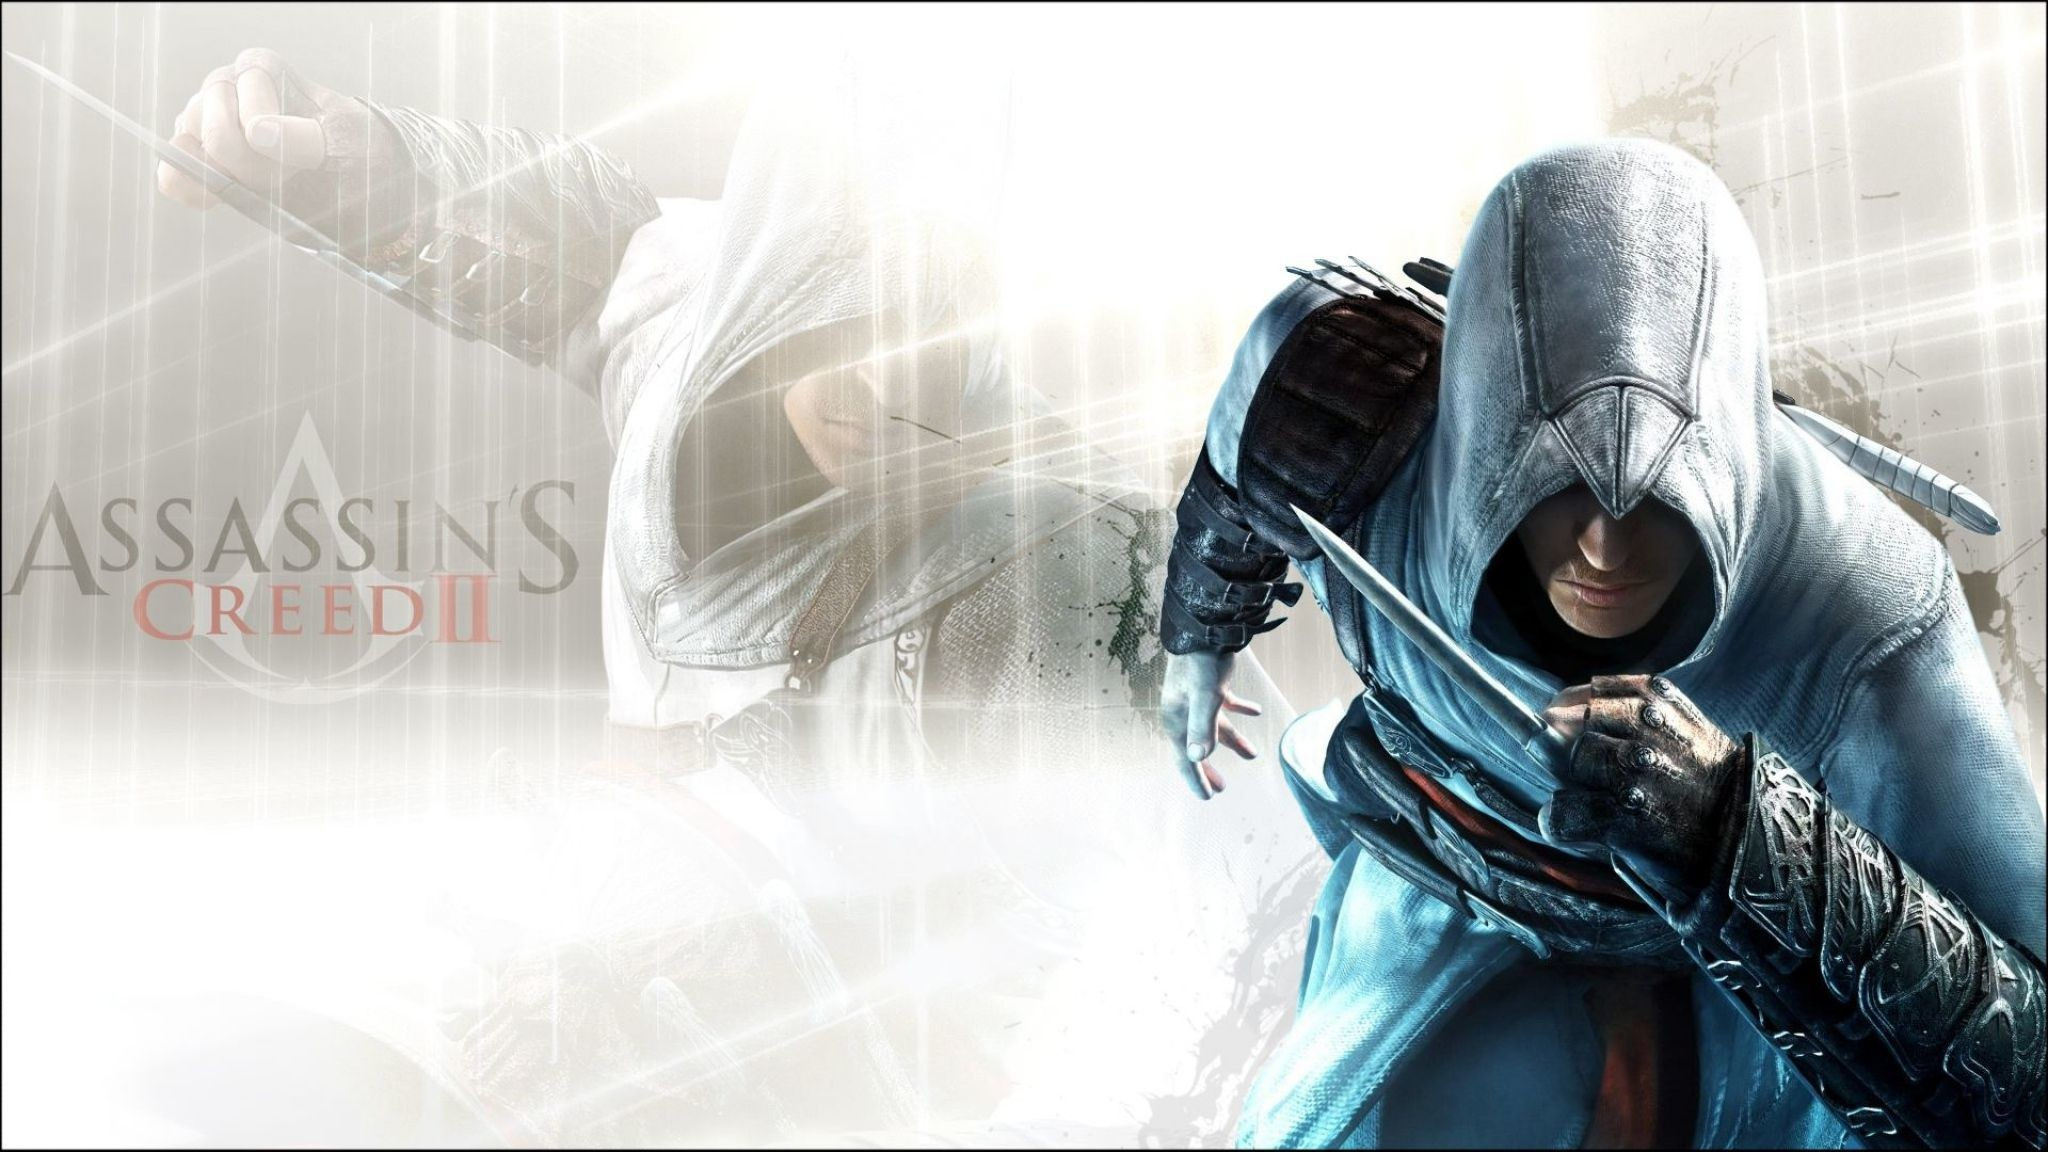 Download Wallpaper Assassins creed 2, Background .